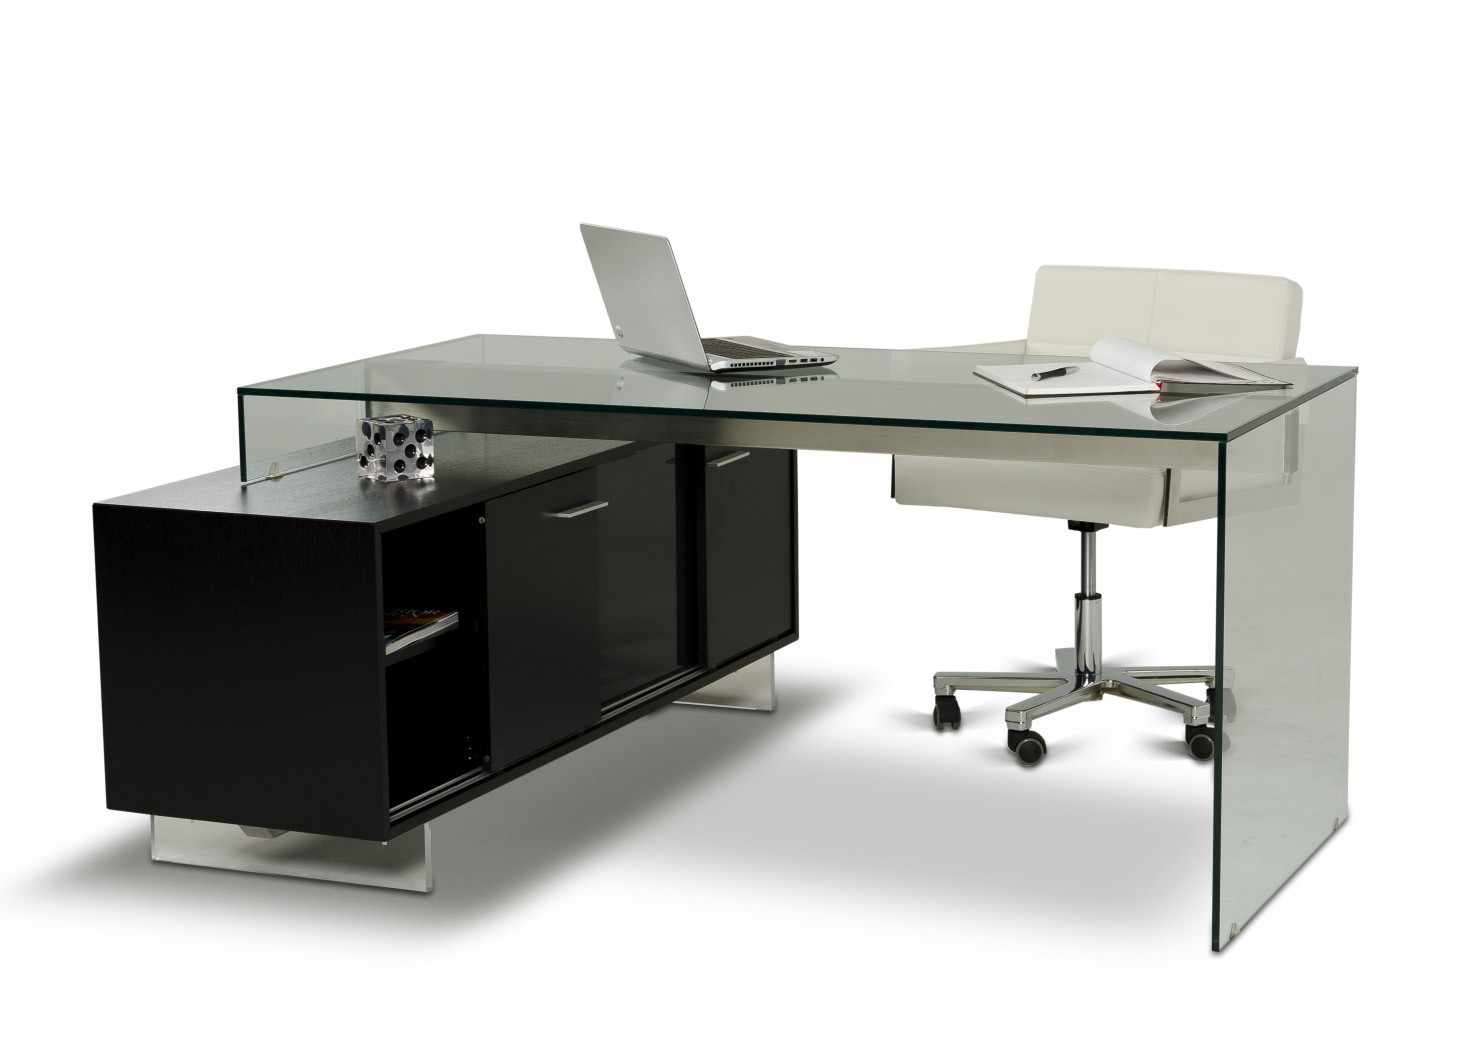 now we go into choosing the modern office furniture